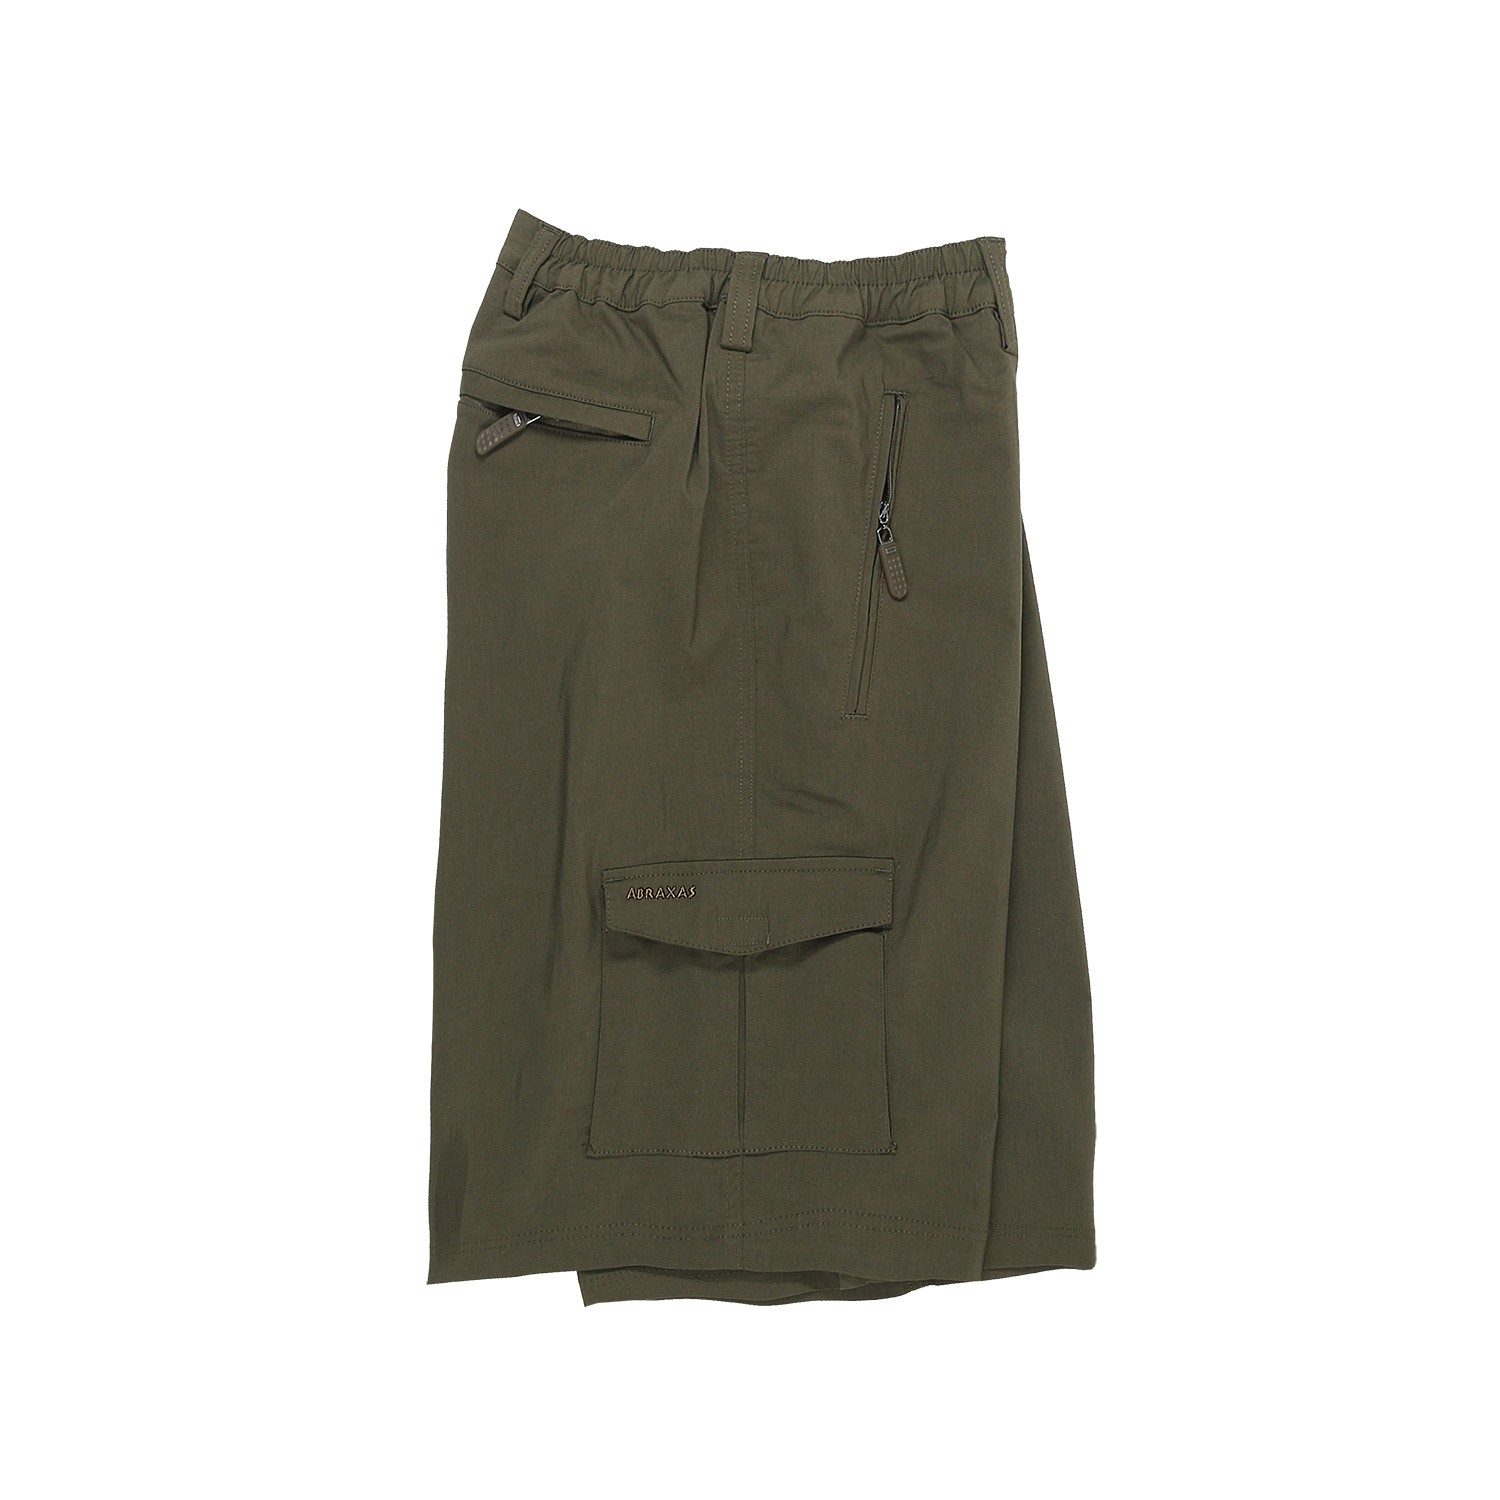 Detail Image to Outdoor Bermuda in khaki by Abraxas up to oversize 10XL